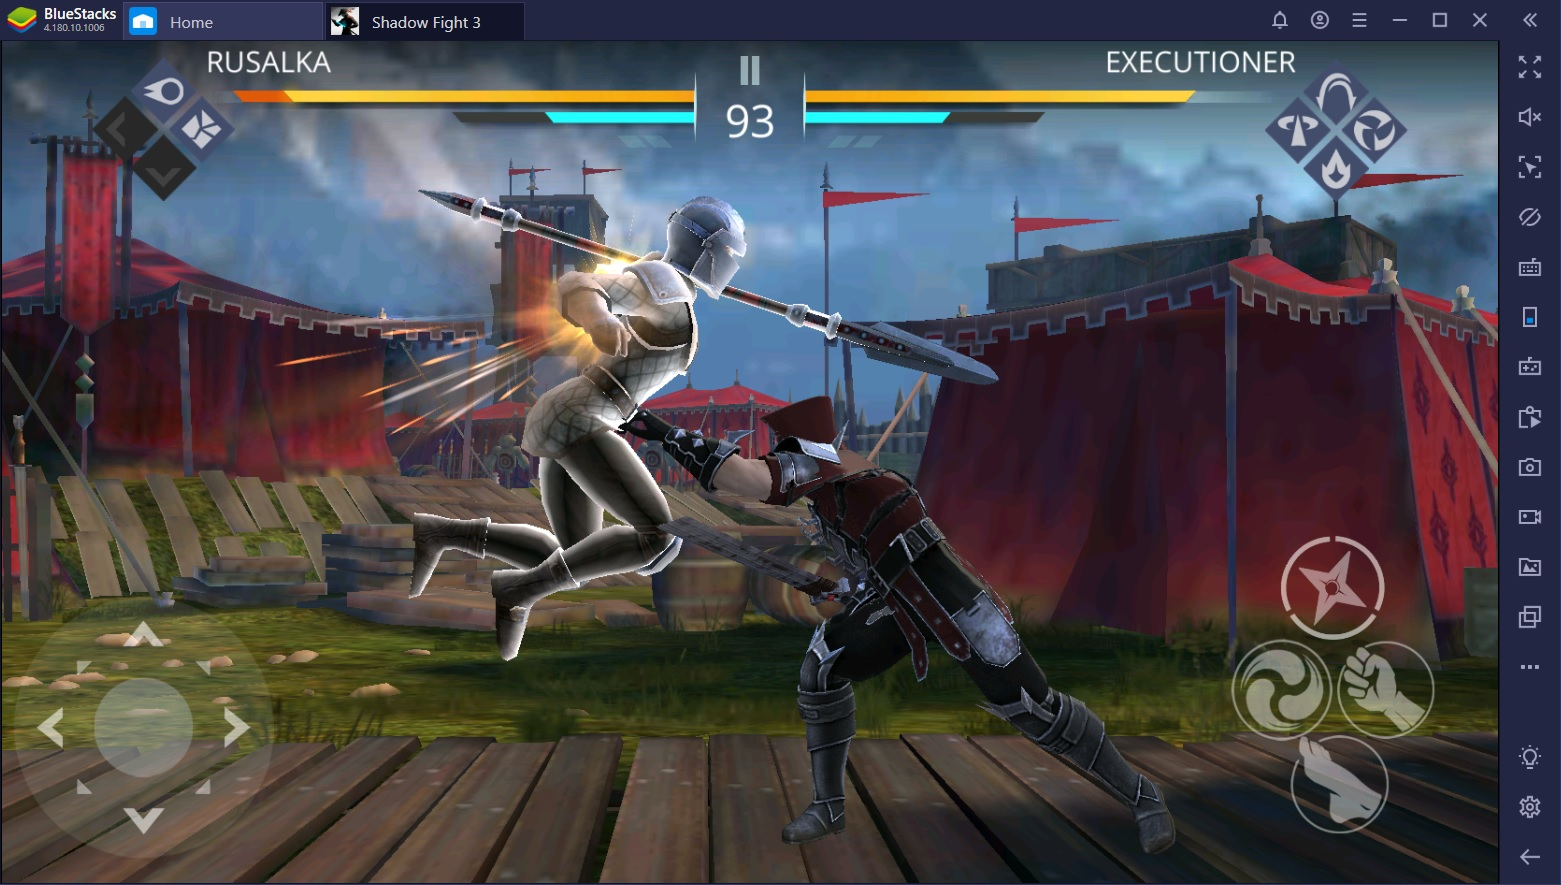 Shadow Fight 3 on PC: How to Master Combat